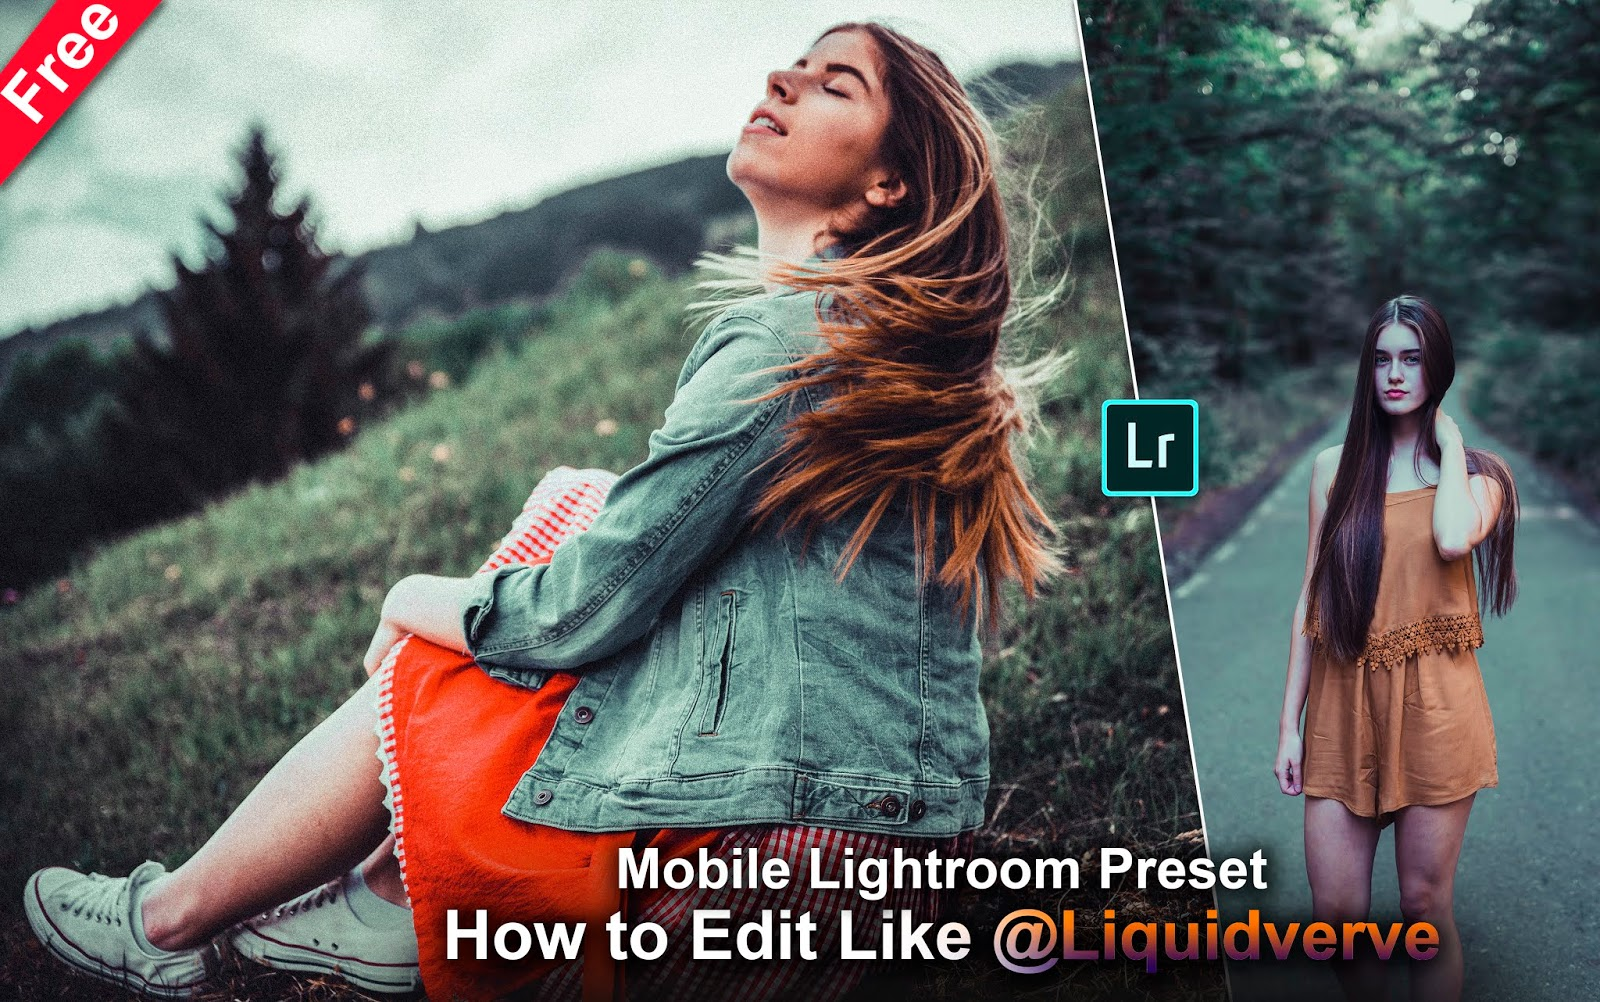 Download Liquidverve Inspired Mobile Lightroom Preset for Free | How to Edit Your Photos Like Liquidverve in Mobile Lightroom App